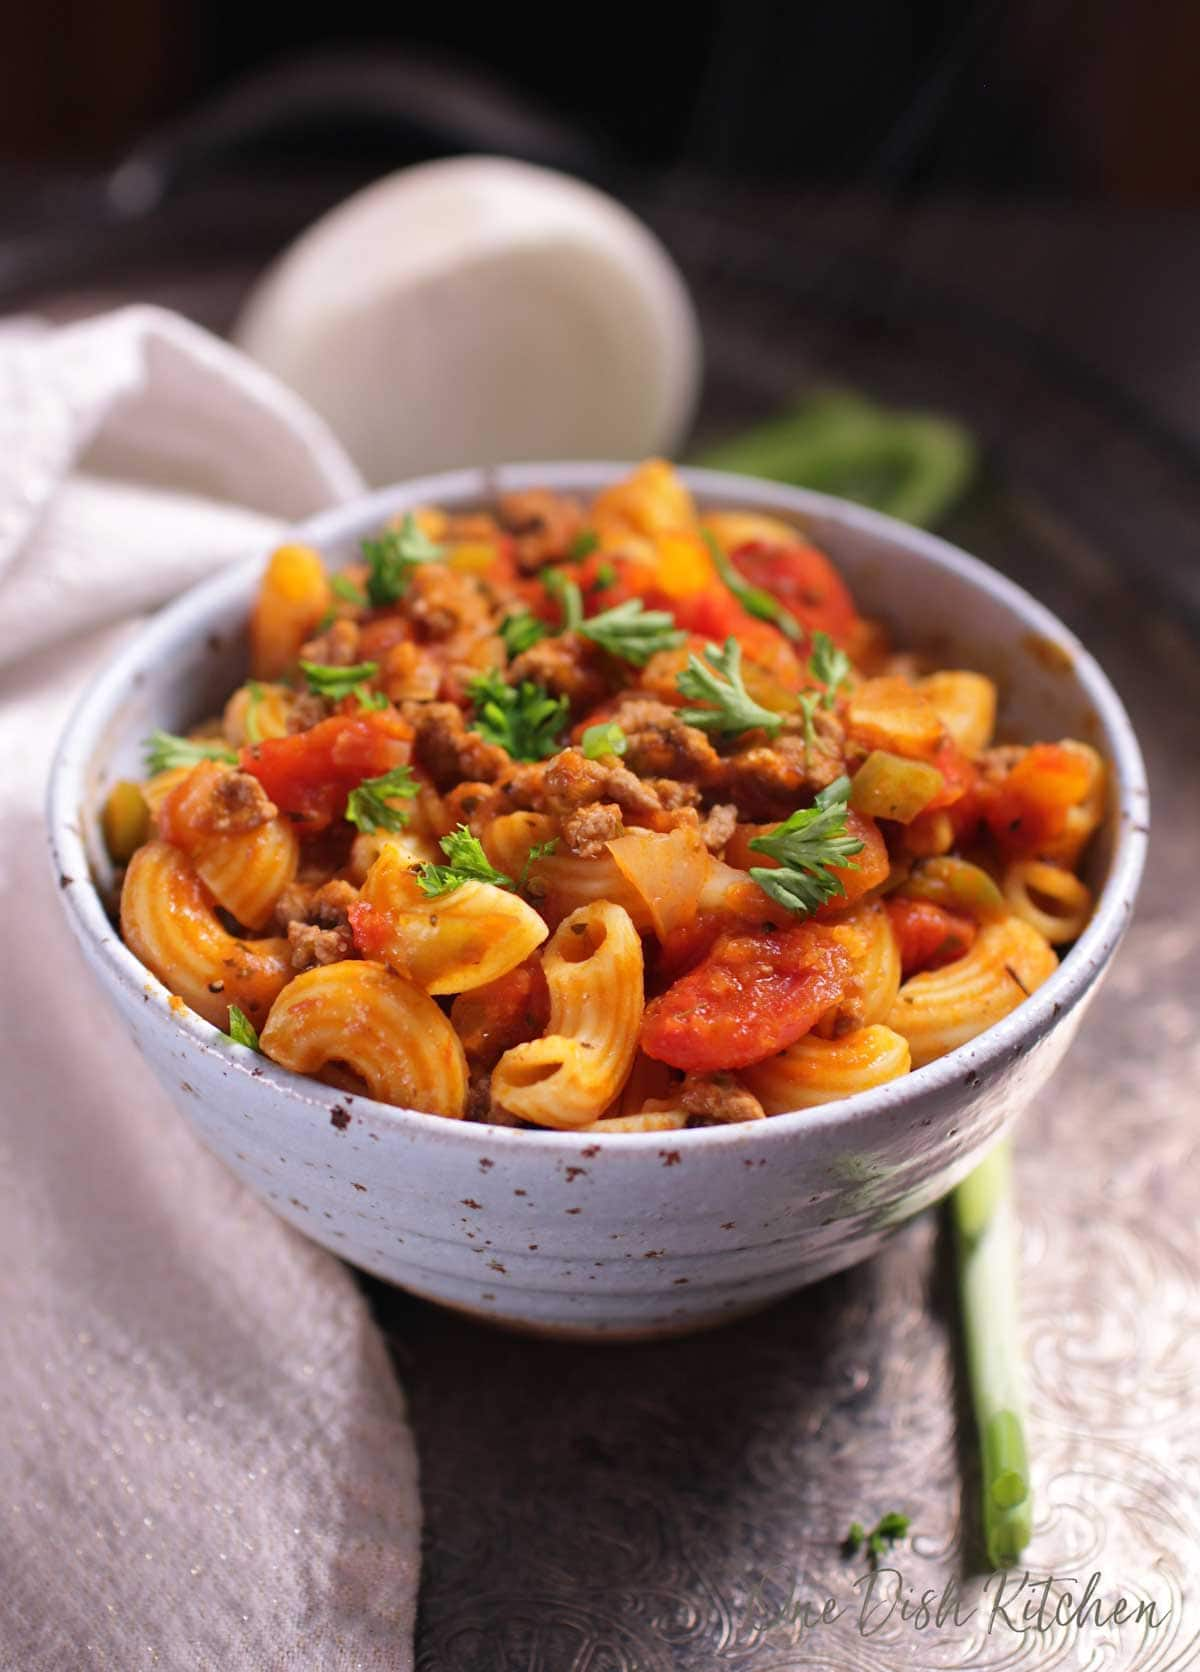 A bowl of american goulash topped with fresh parsley.